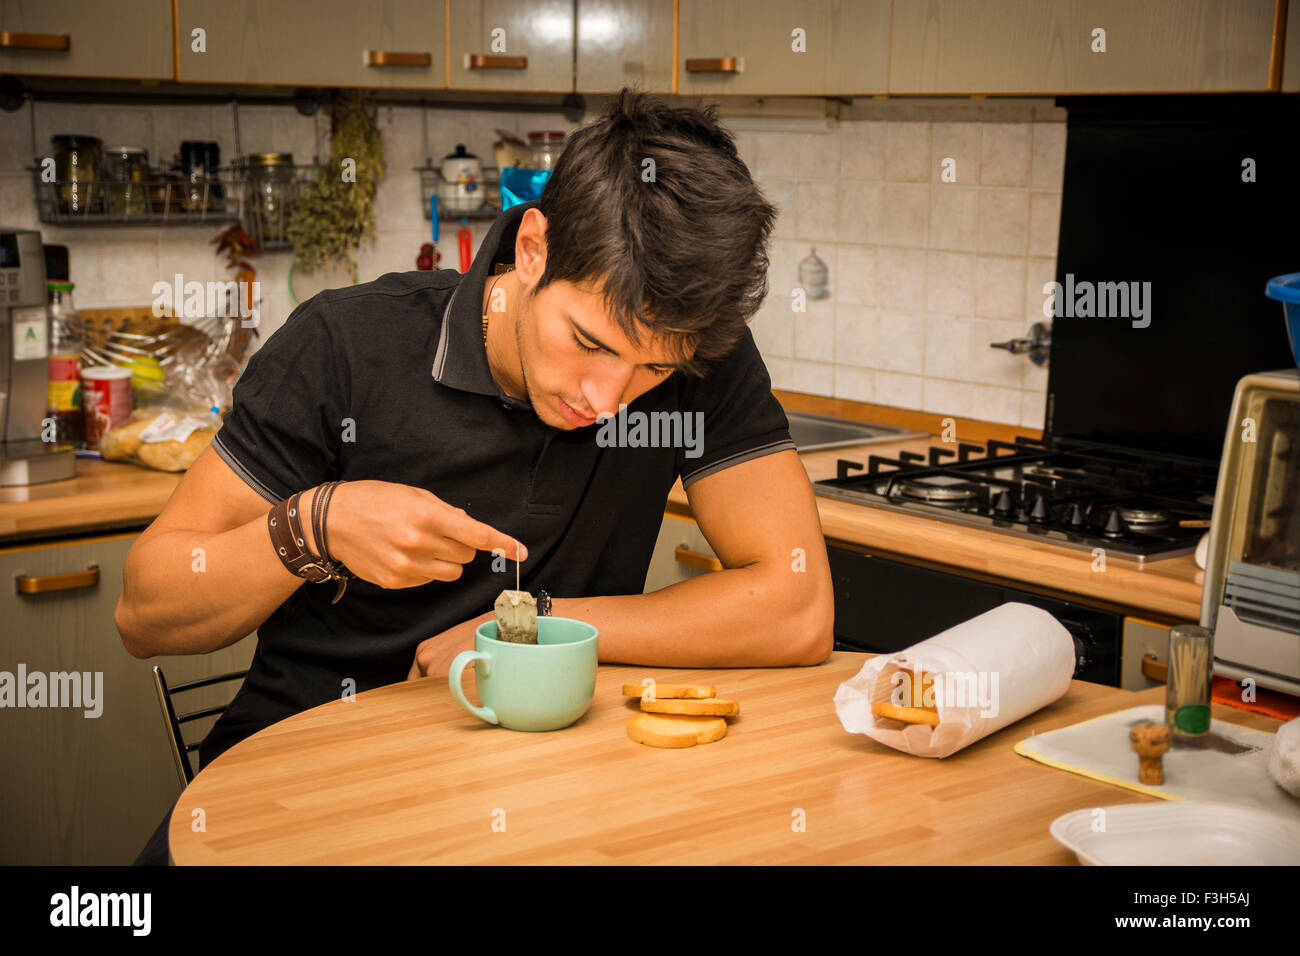 Tired or Sick Attractive Young Man Leaning with Elbow on Kitchen Table and Holding Cup of Coffee for Breakfast - Stock Image